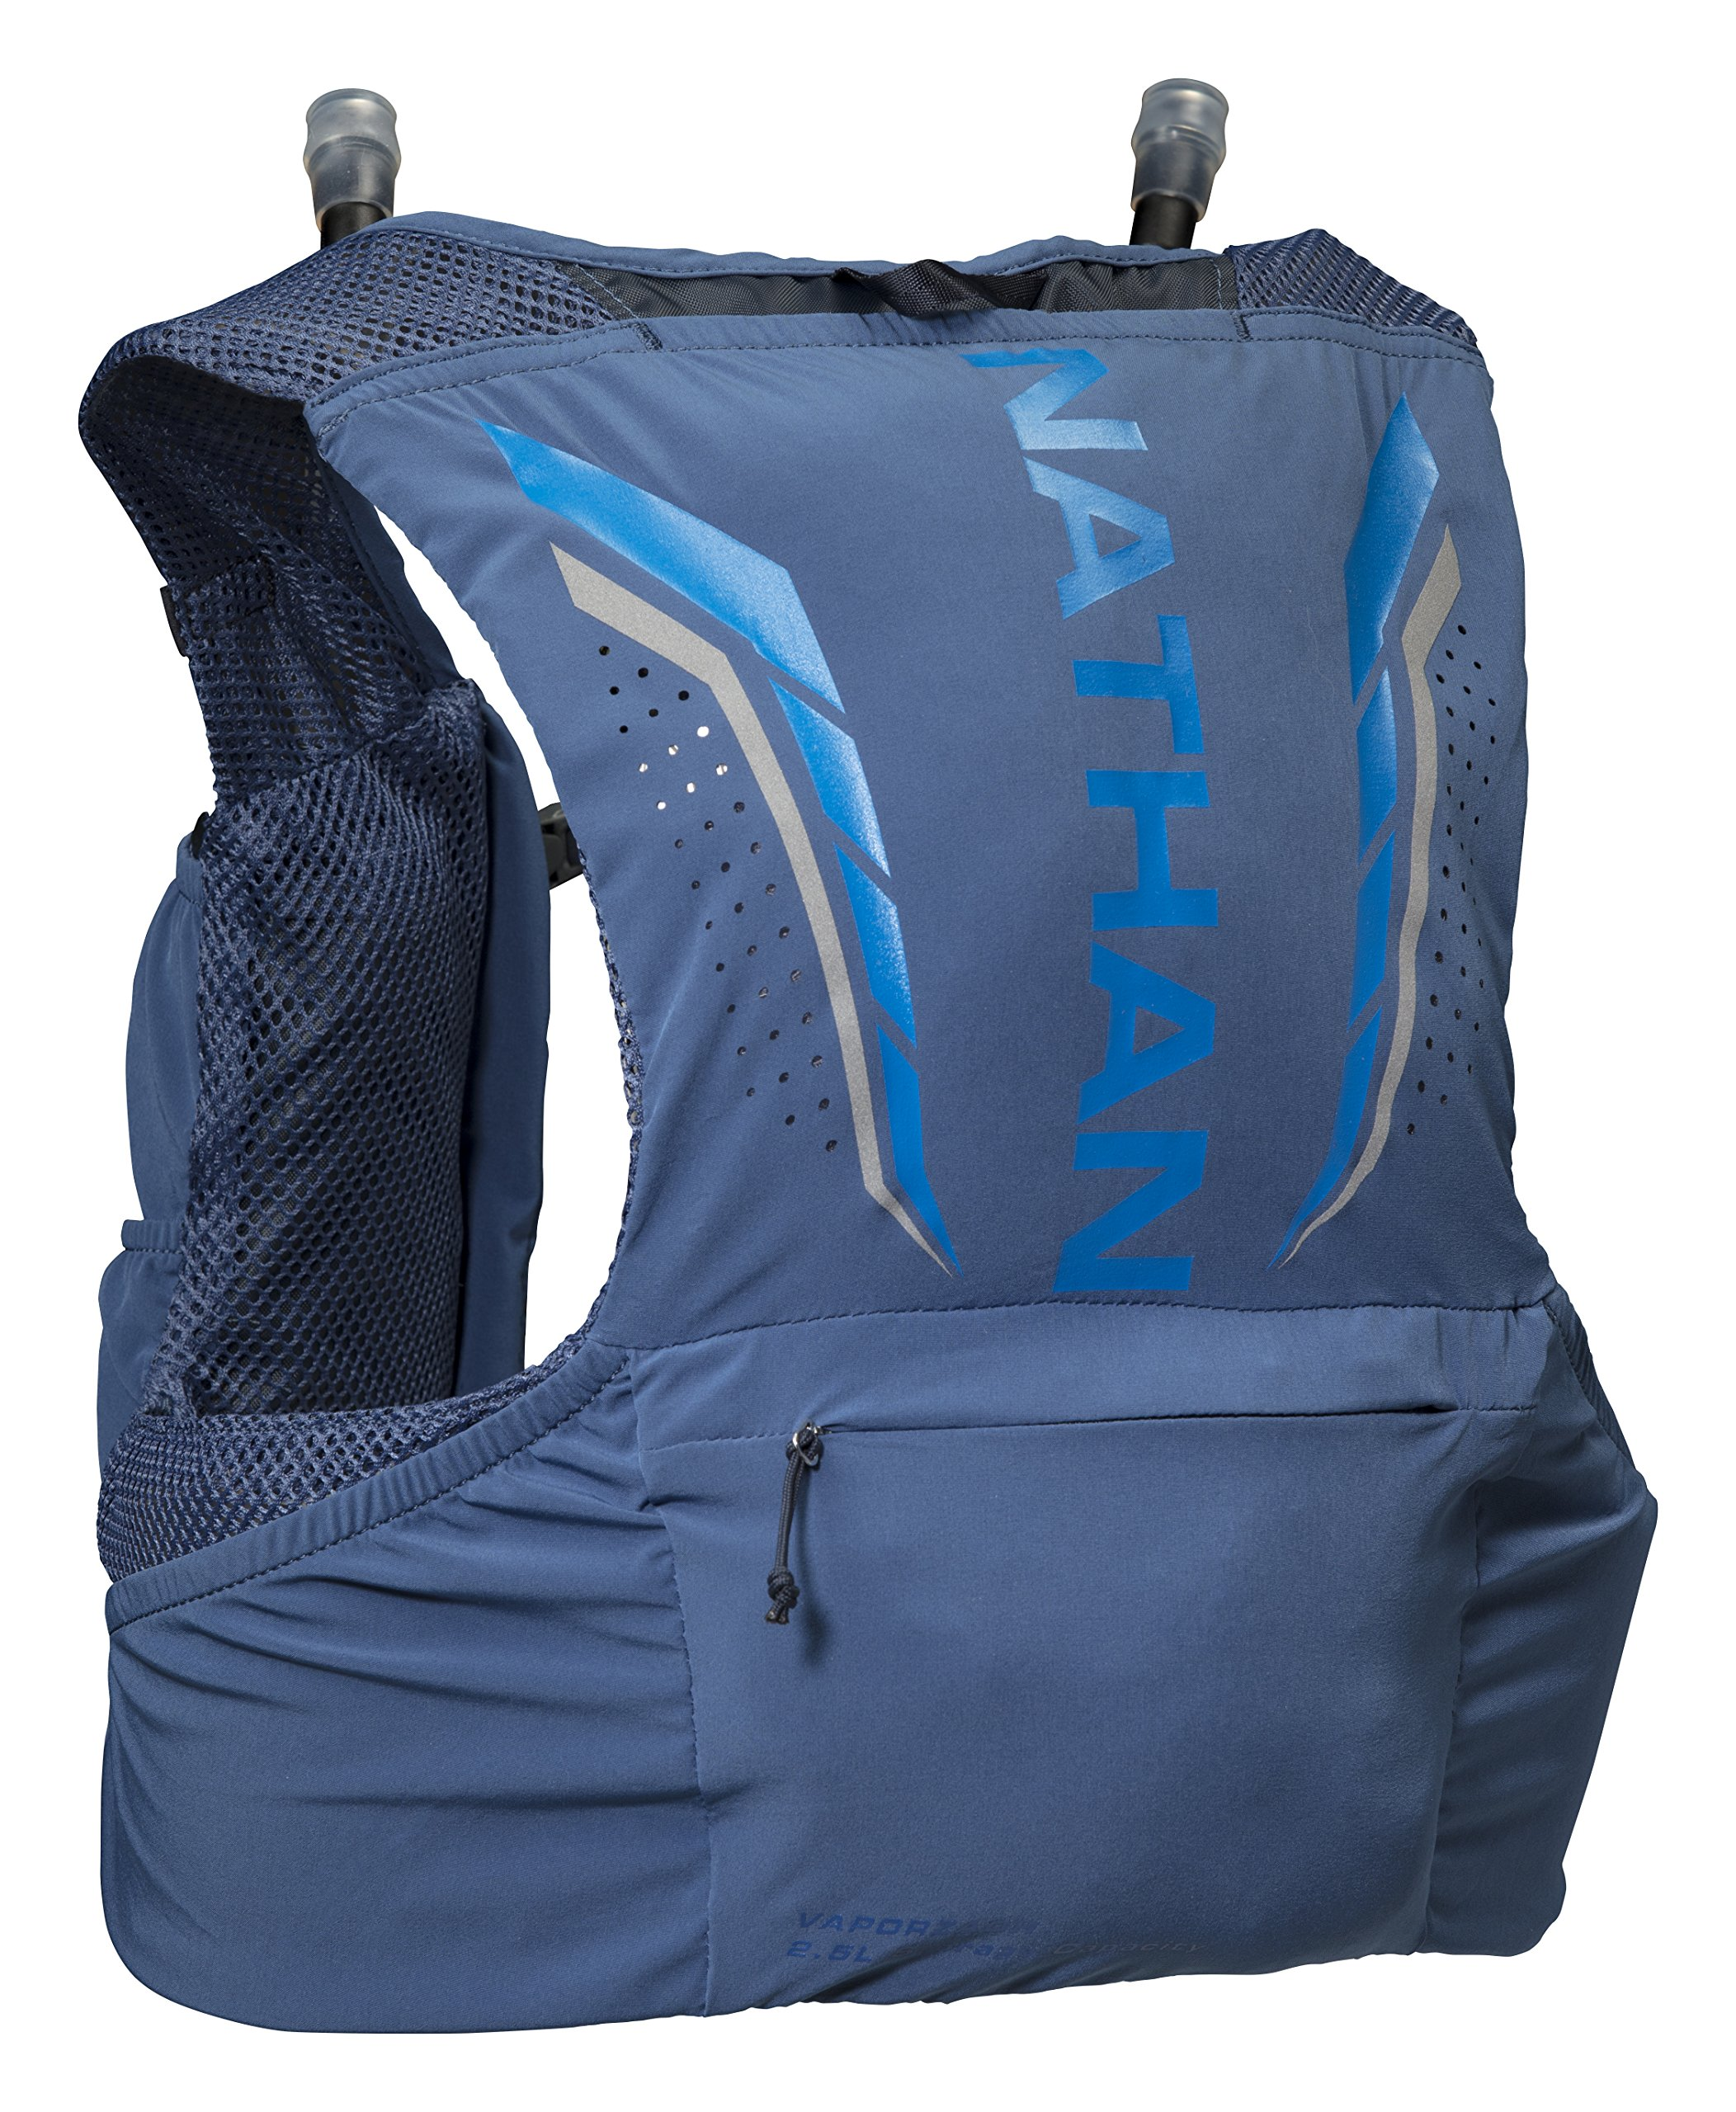 Nathan NS4544-0377-34 Male 2.5L Running Hydration Packs, True Navy/Blue Nights, Large by Nathan (Image #2)